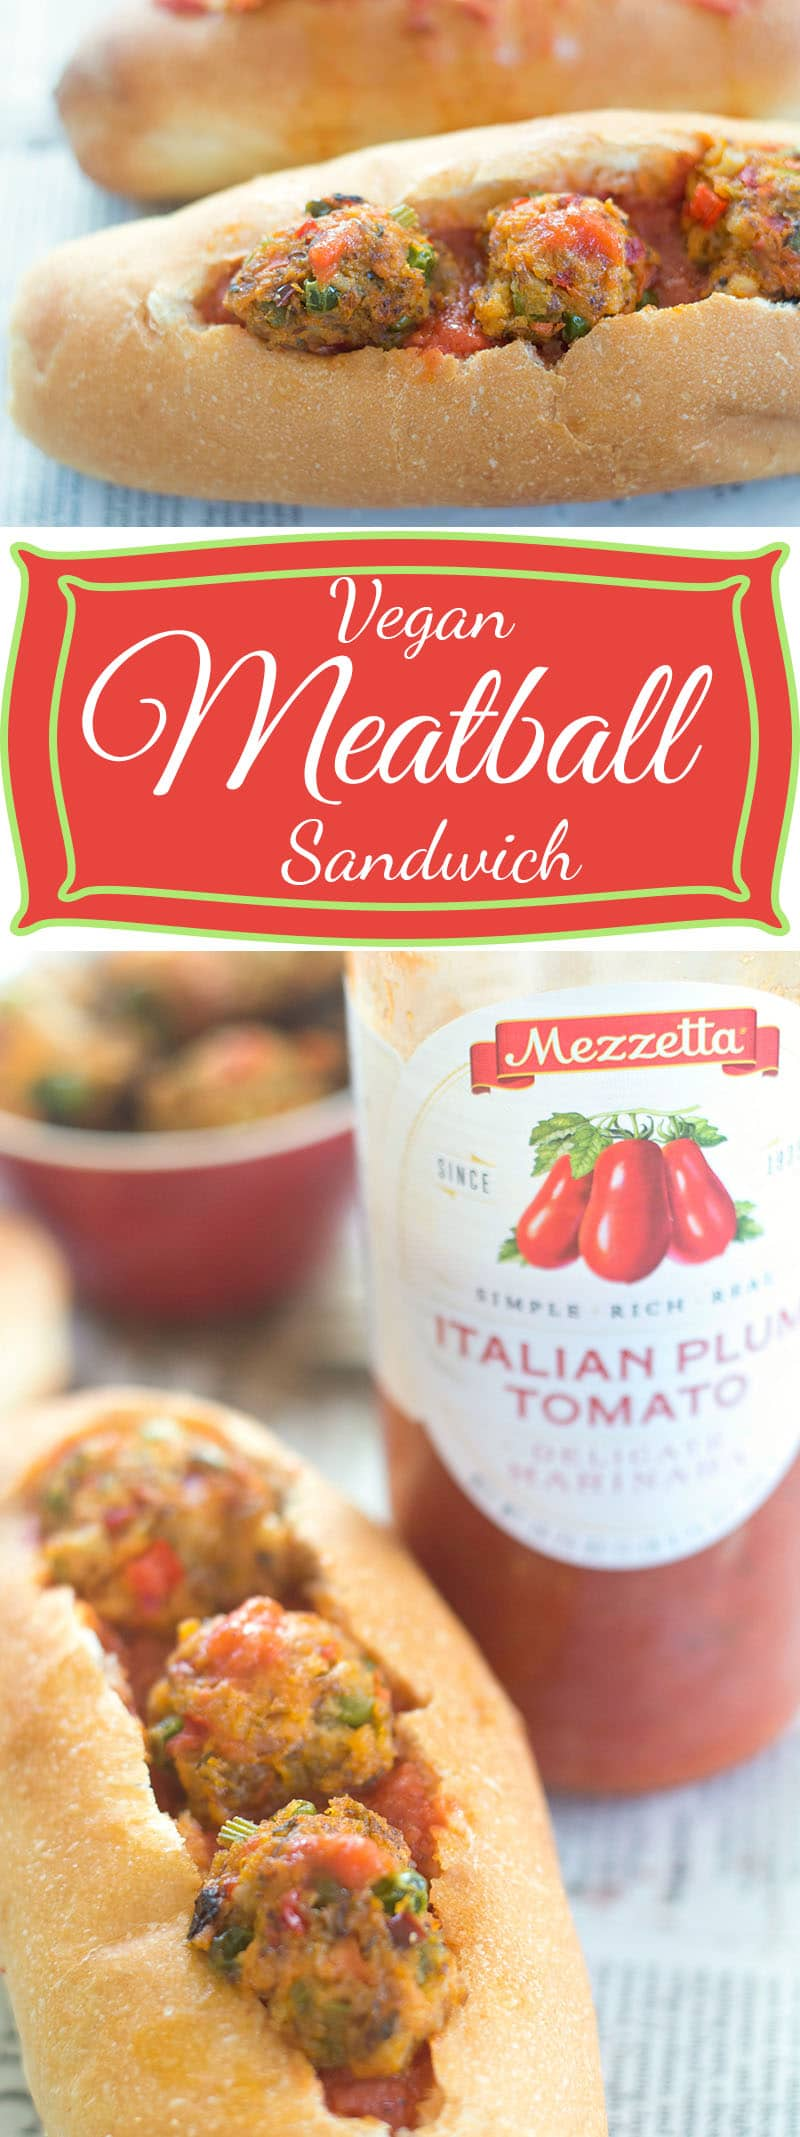 Vegan Meatball Sub Recipe - Made with Fresh Veggies and baked in the oven | Vegan Meatball Sandwich, Vegan meatball recipes, Comfort Food recipes, Farmer's Market Recipes #veganfood #veganrecipes #meatballs #sandwich #comfortfood